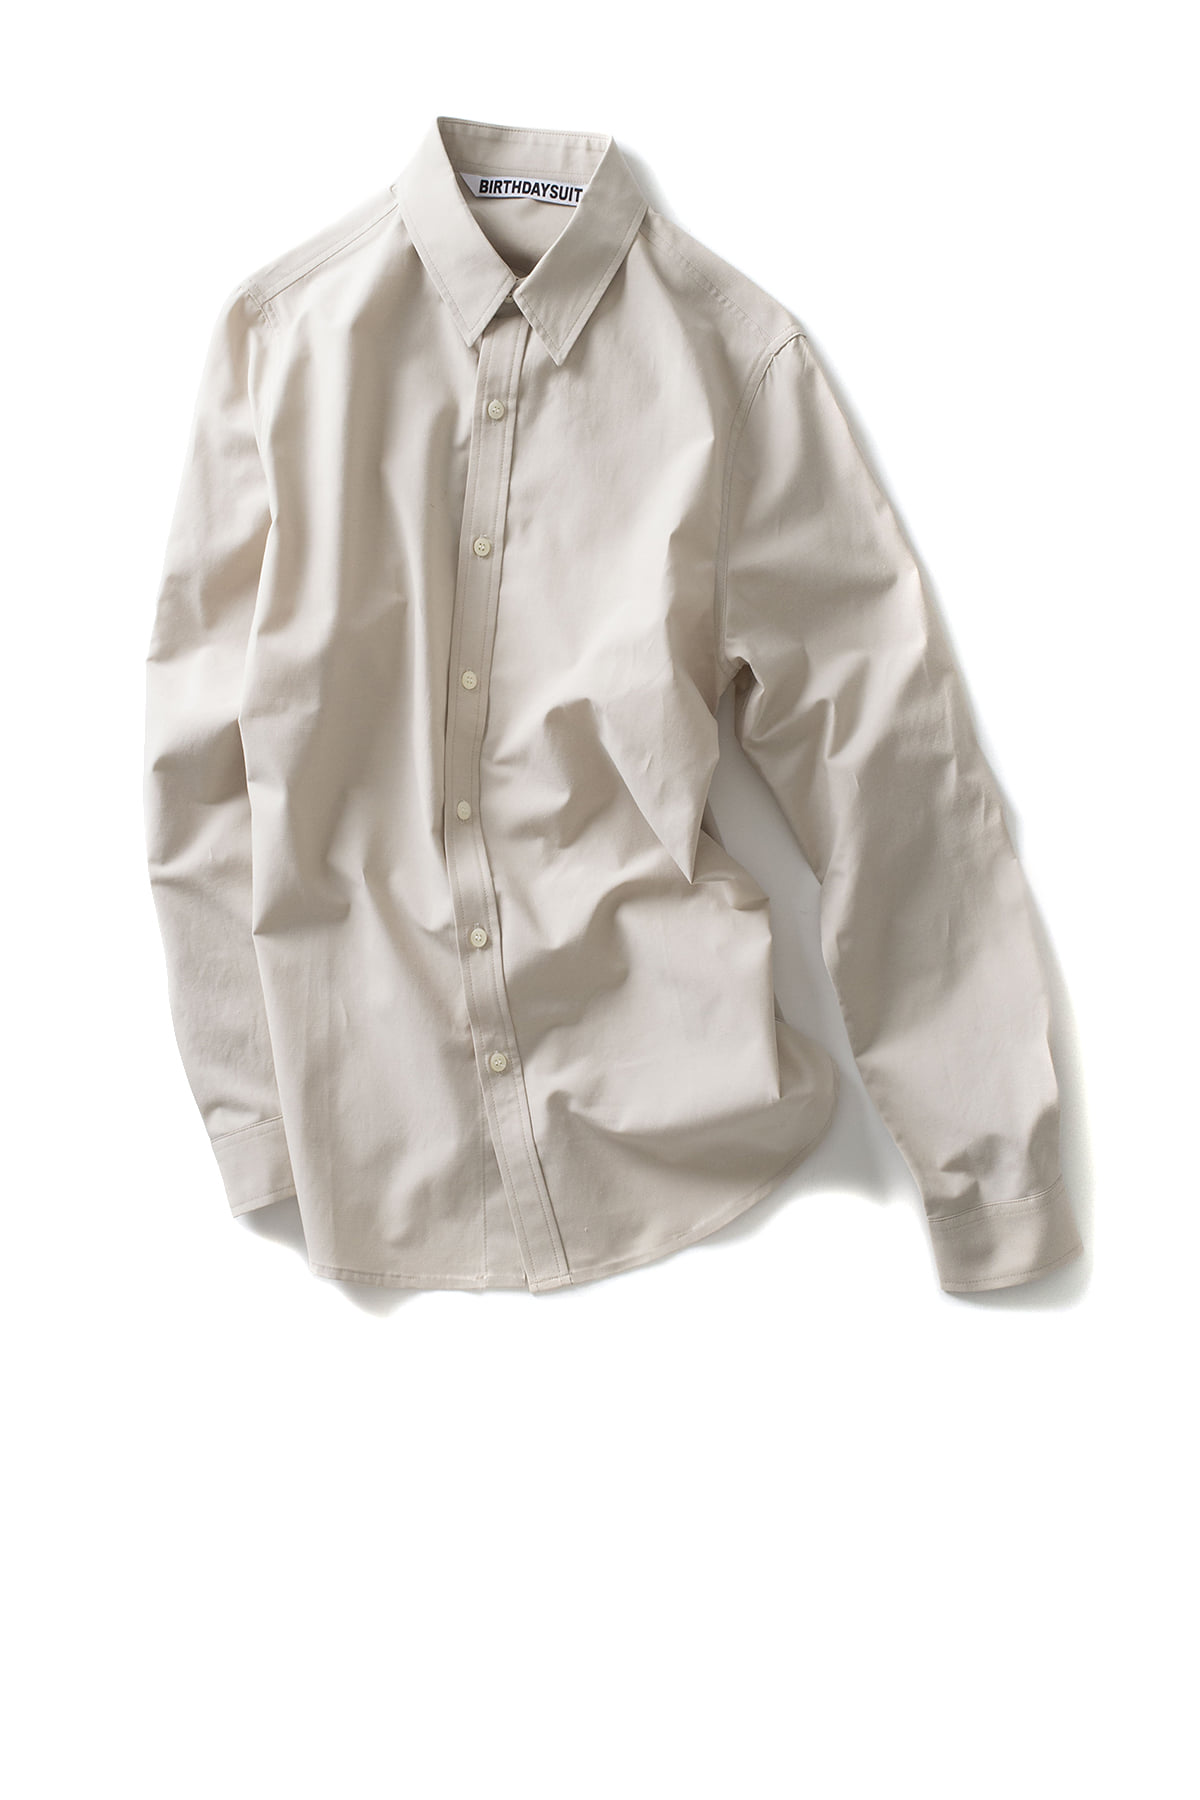 BIRTHDAYSUIT : Basic Shirt (Ivory)